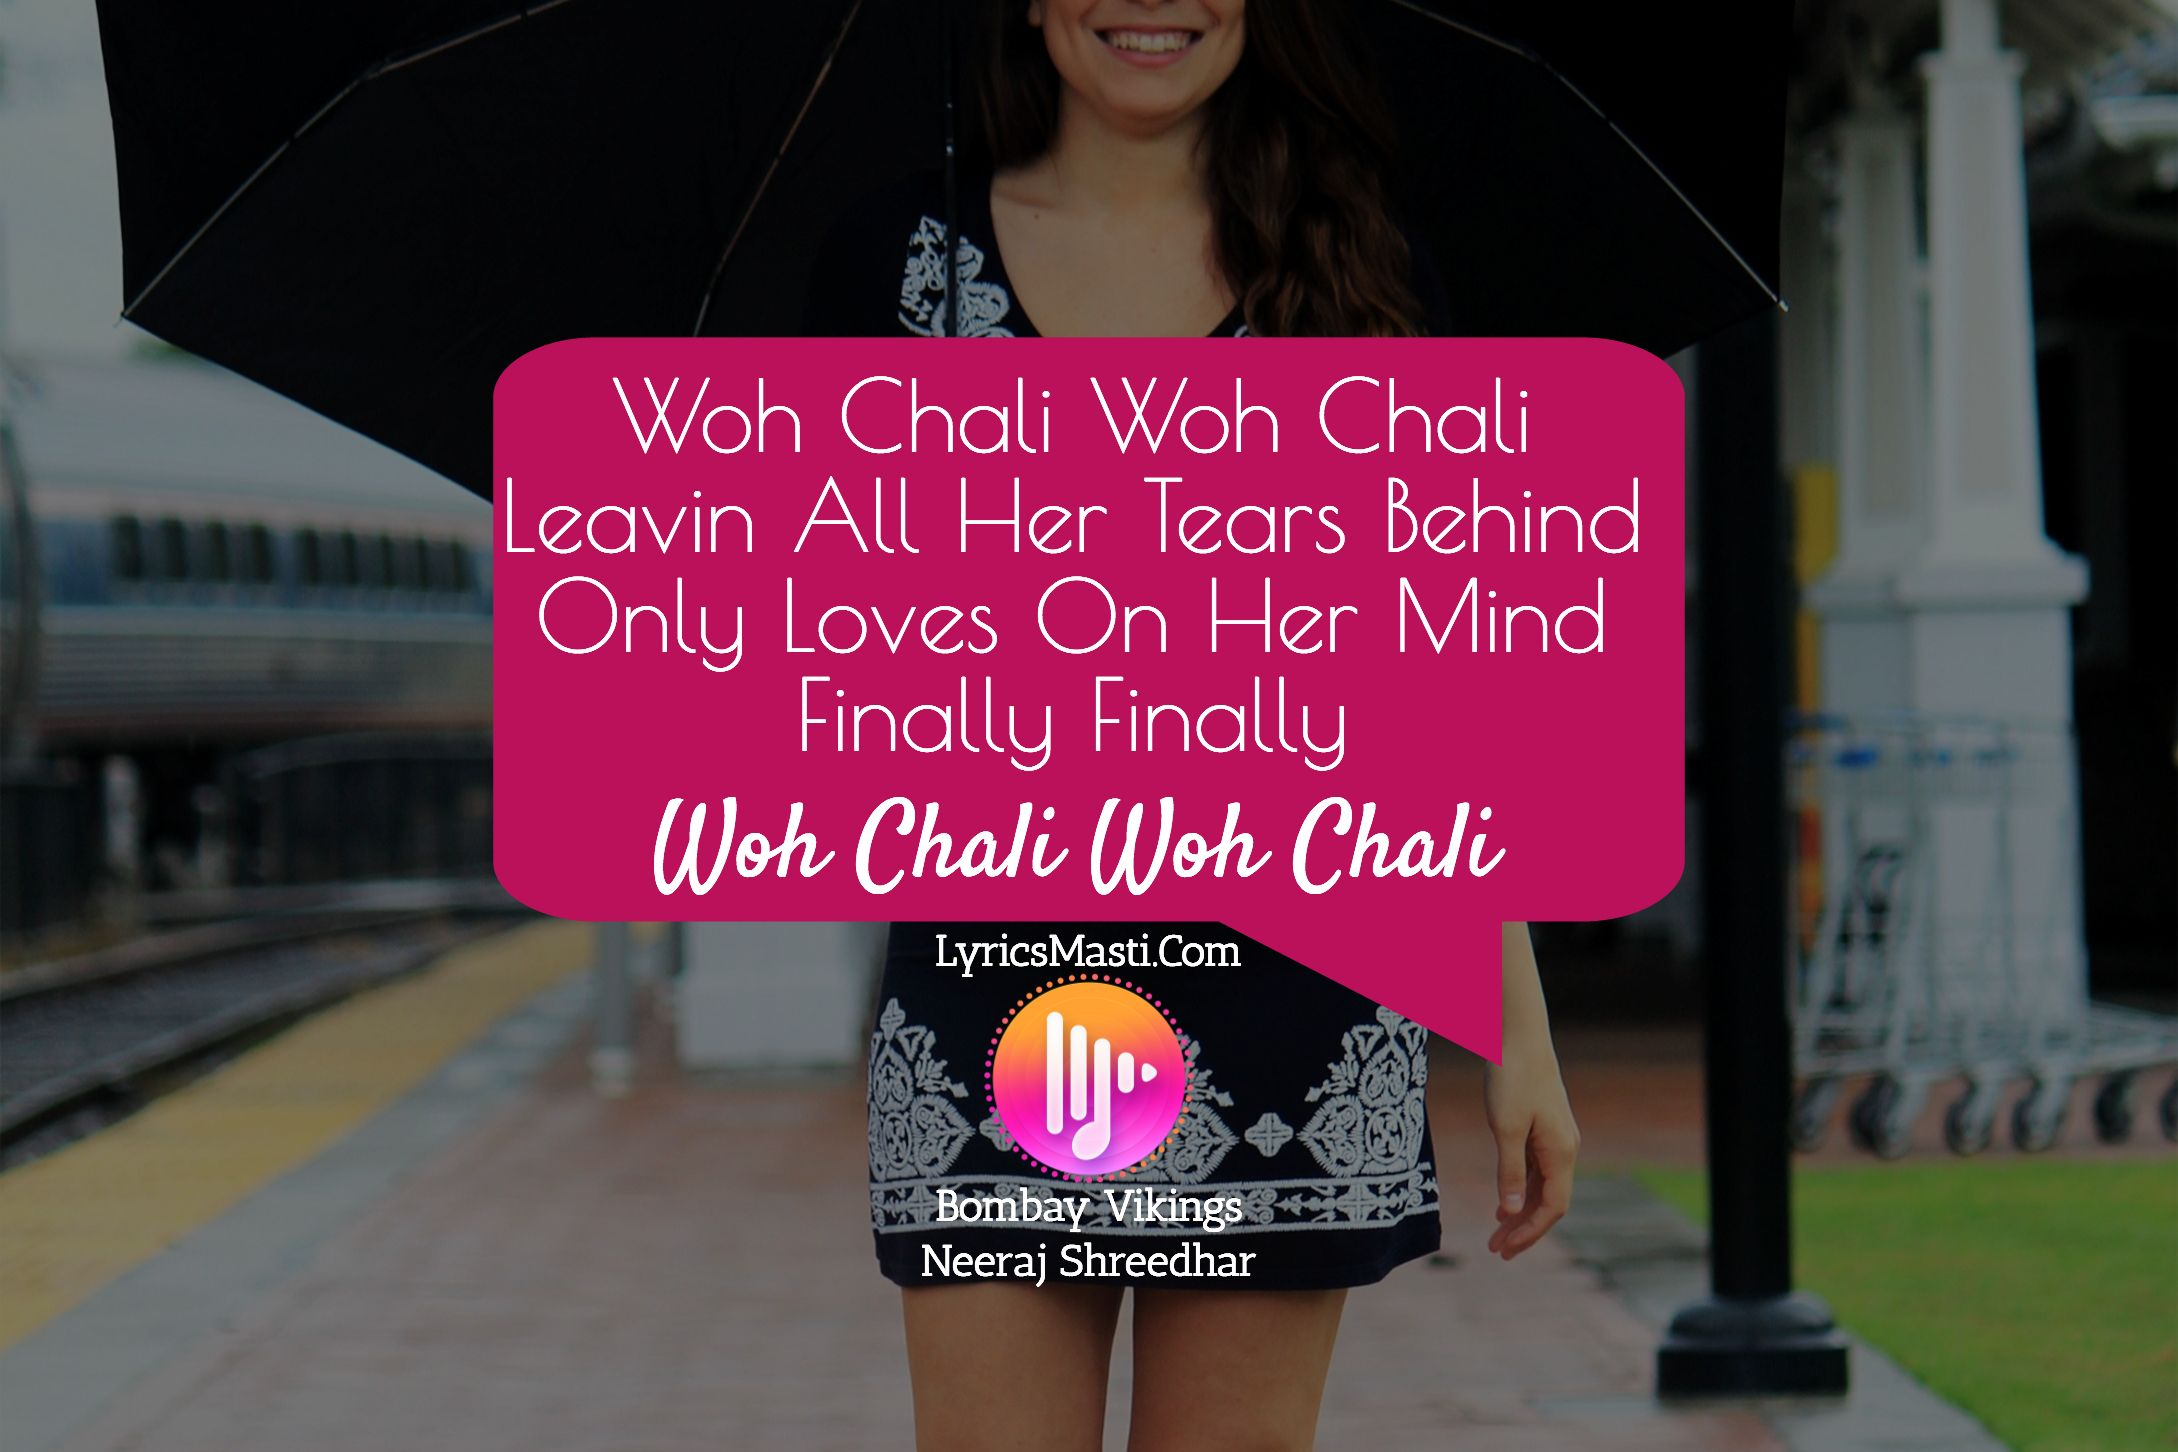 Woh Chali Woh Chali  Leavin All Her Tears Behind  Only Loves On Her Mind  Finally Finally / LyricsMa...